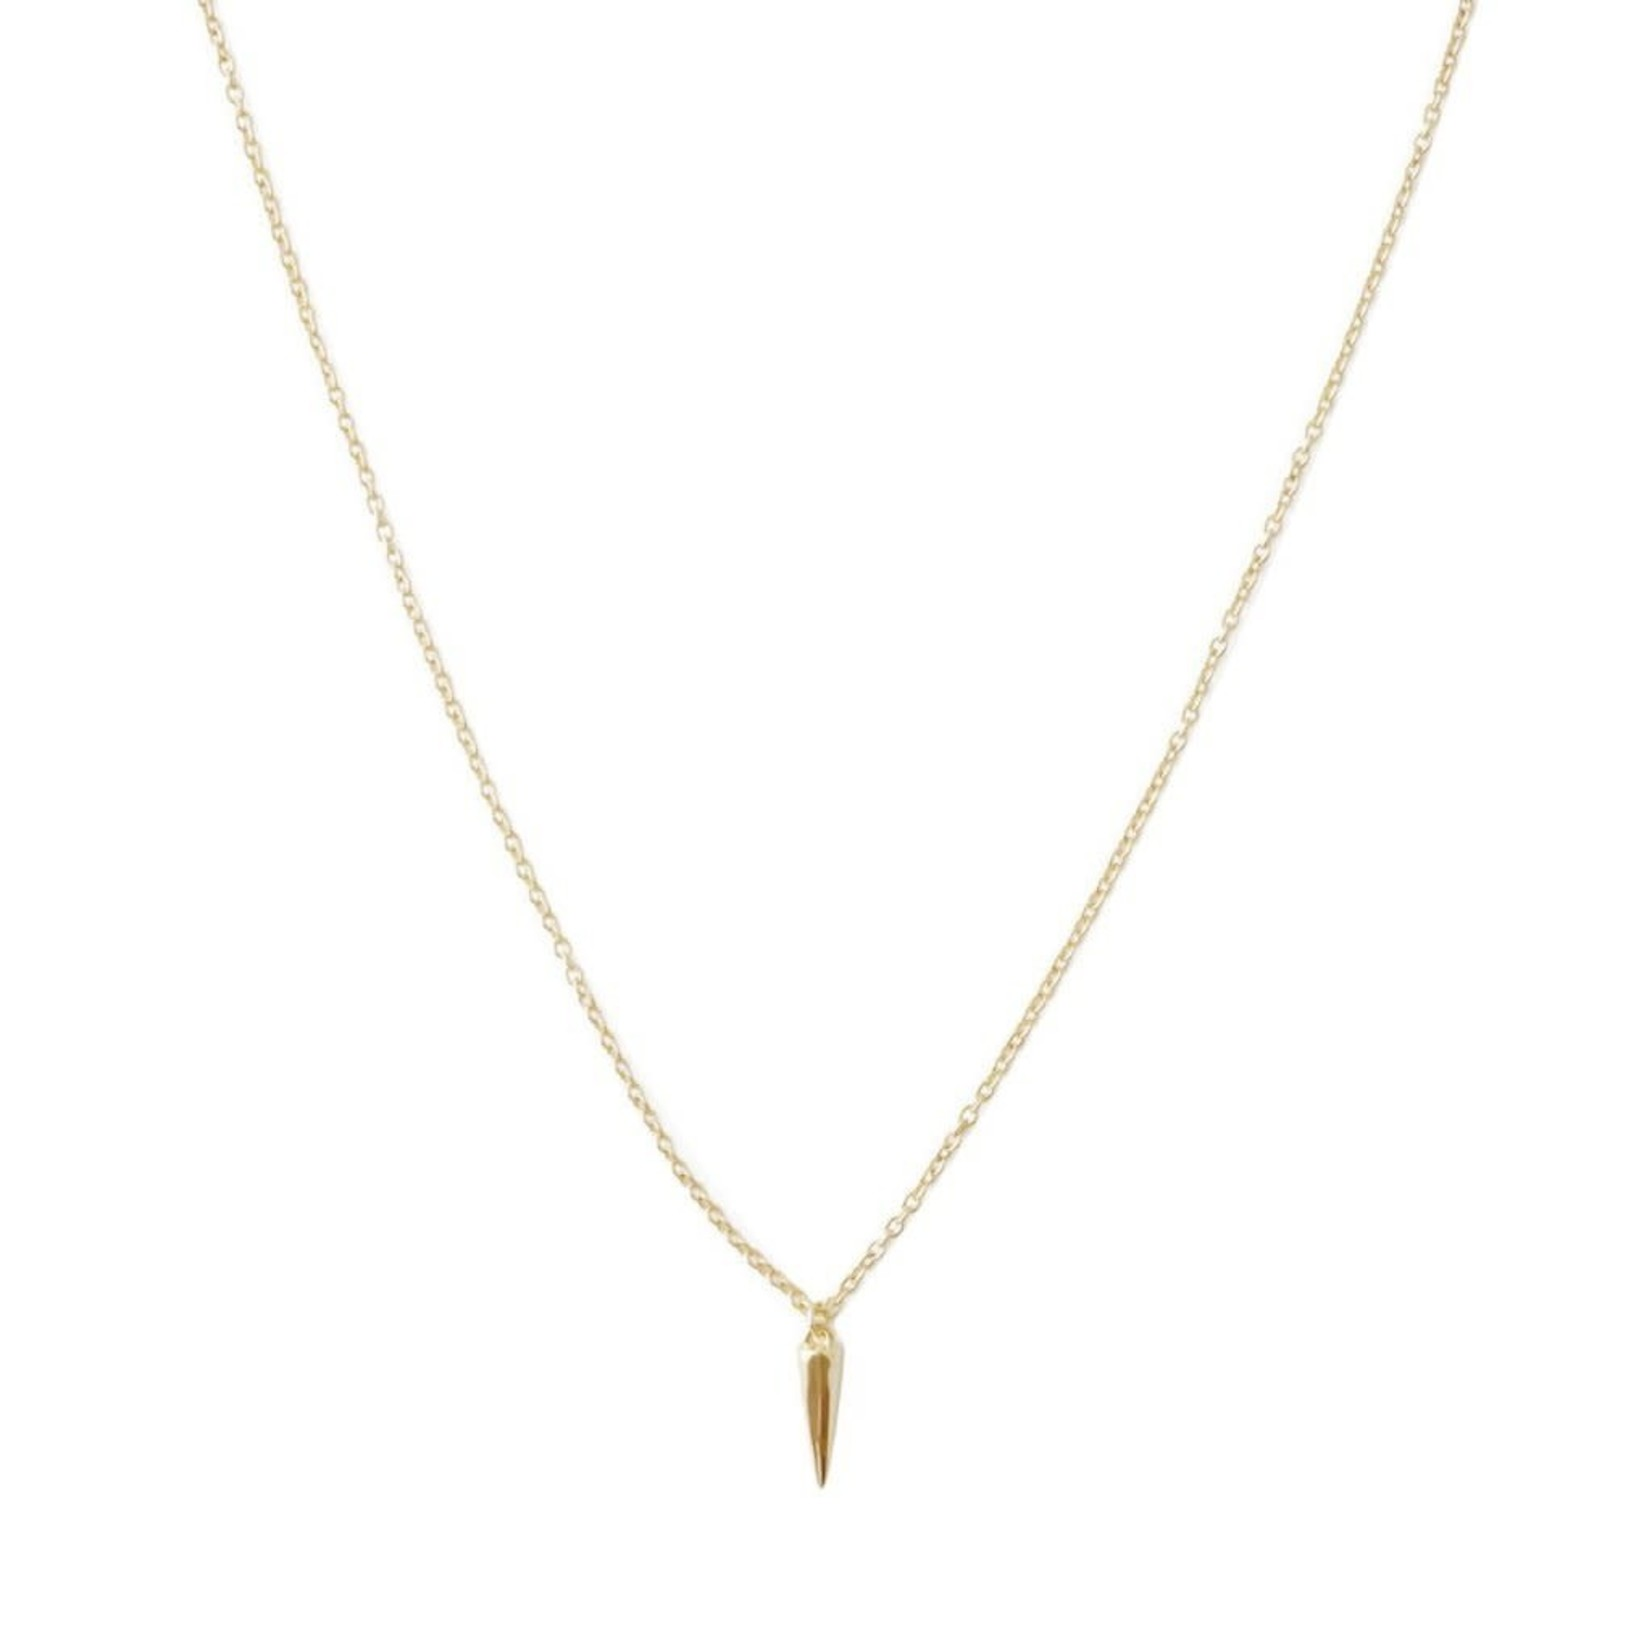 Honeycat Jewelry Honeycat Mini Spike Necklace